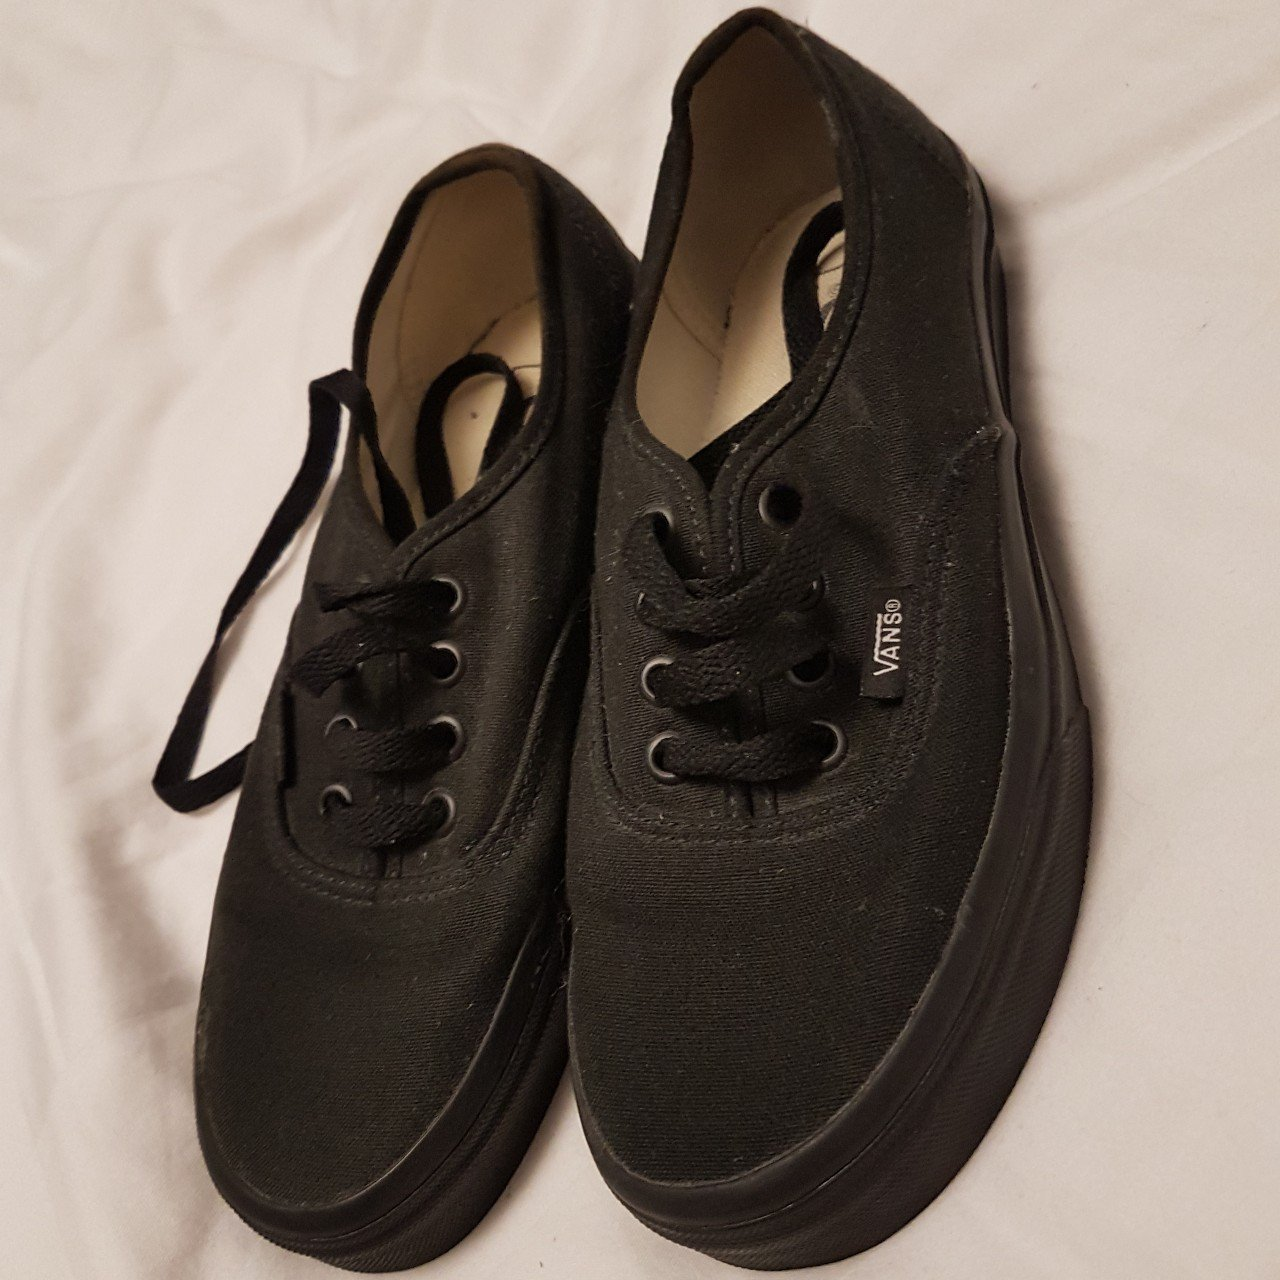 Black Vans authentic classic mono lace up trainers. Worn a a - Depop 449ade415037